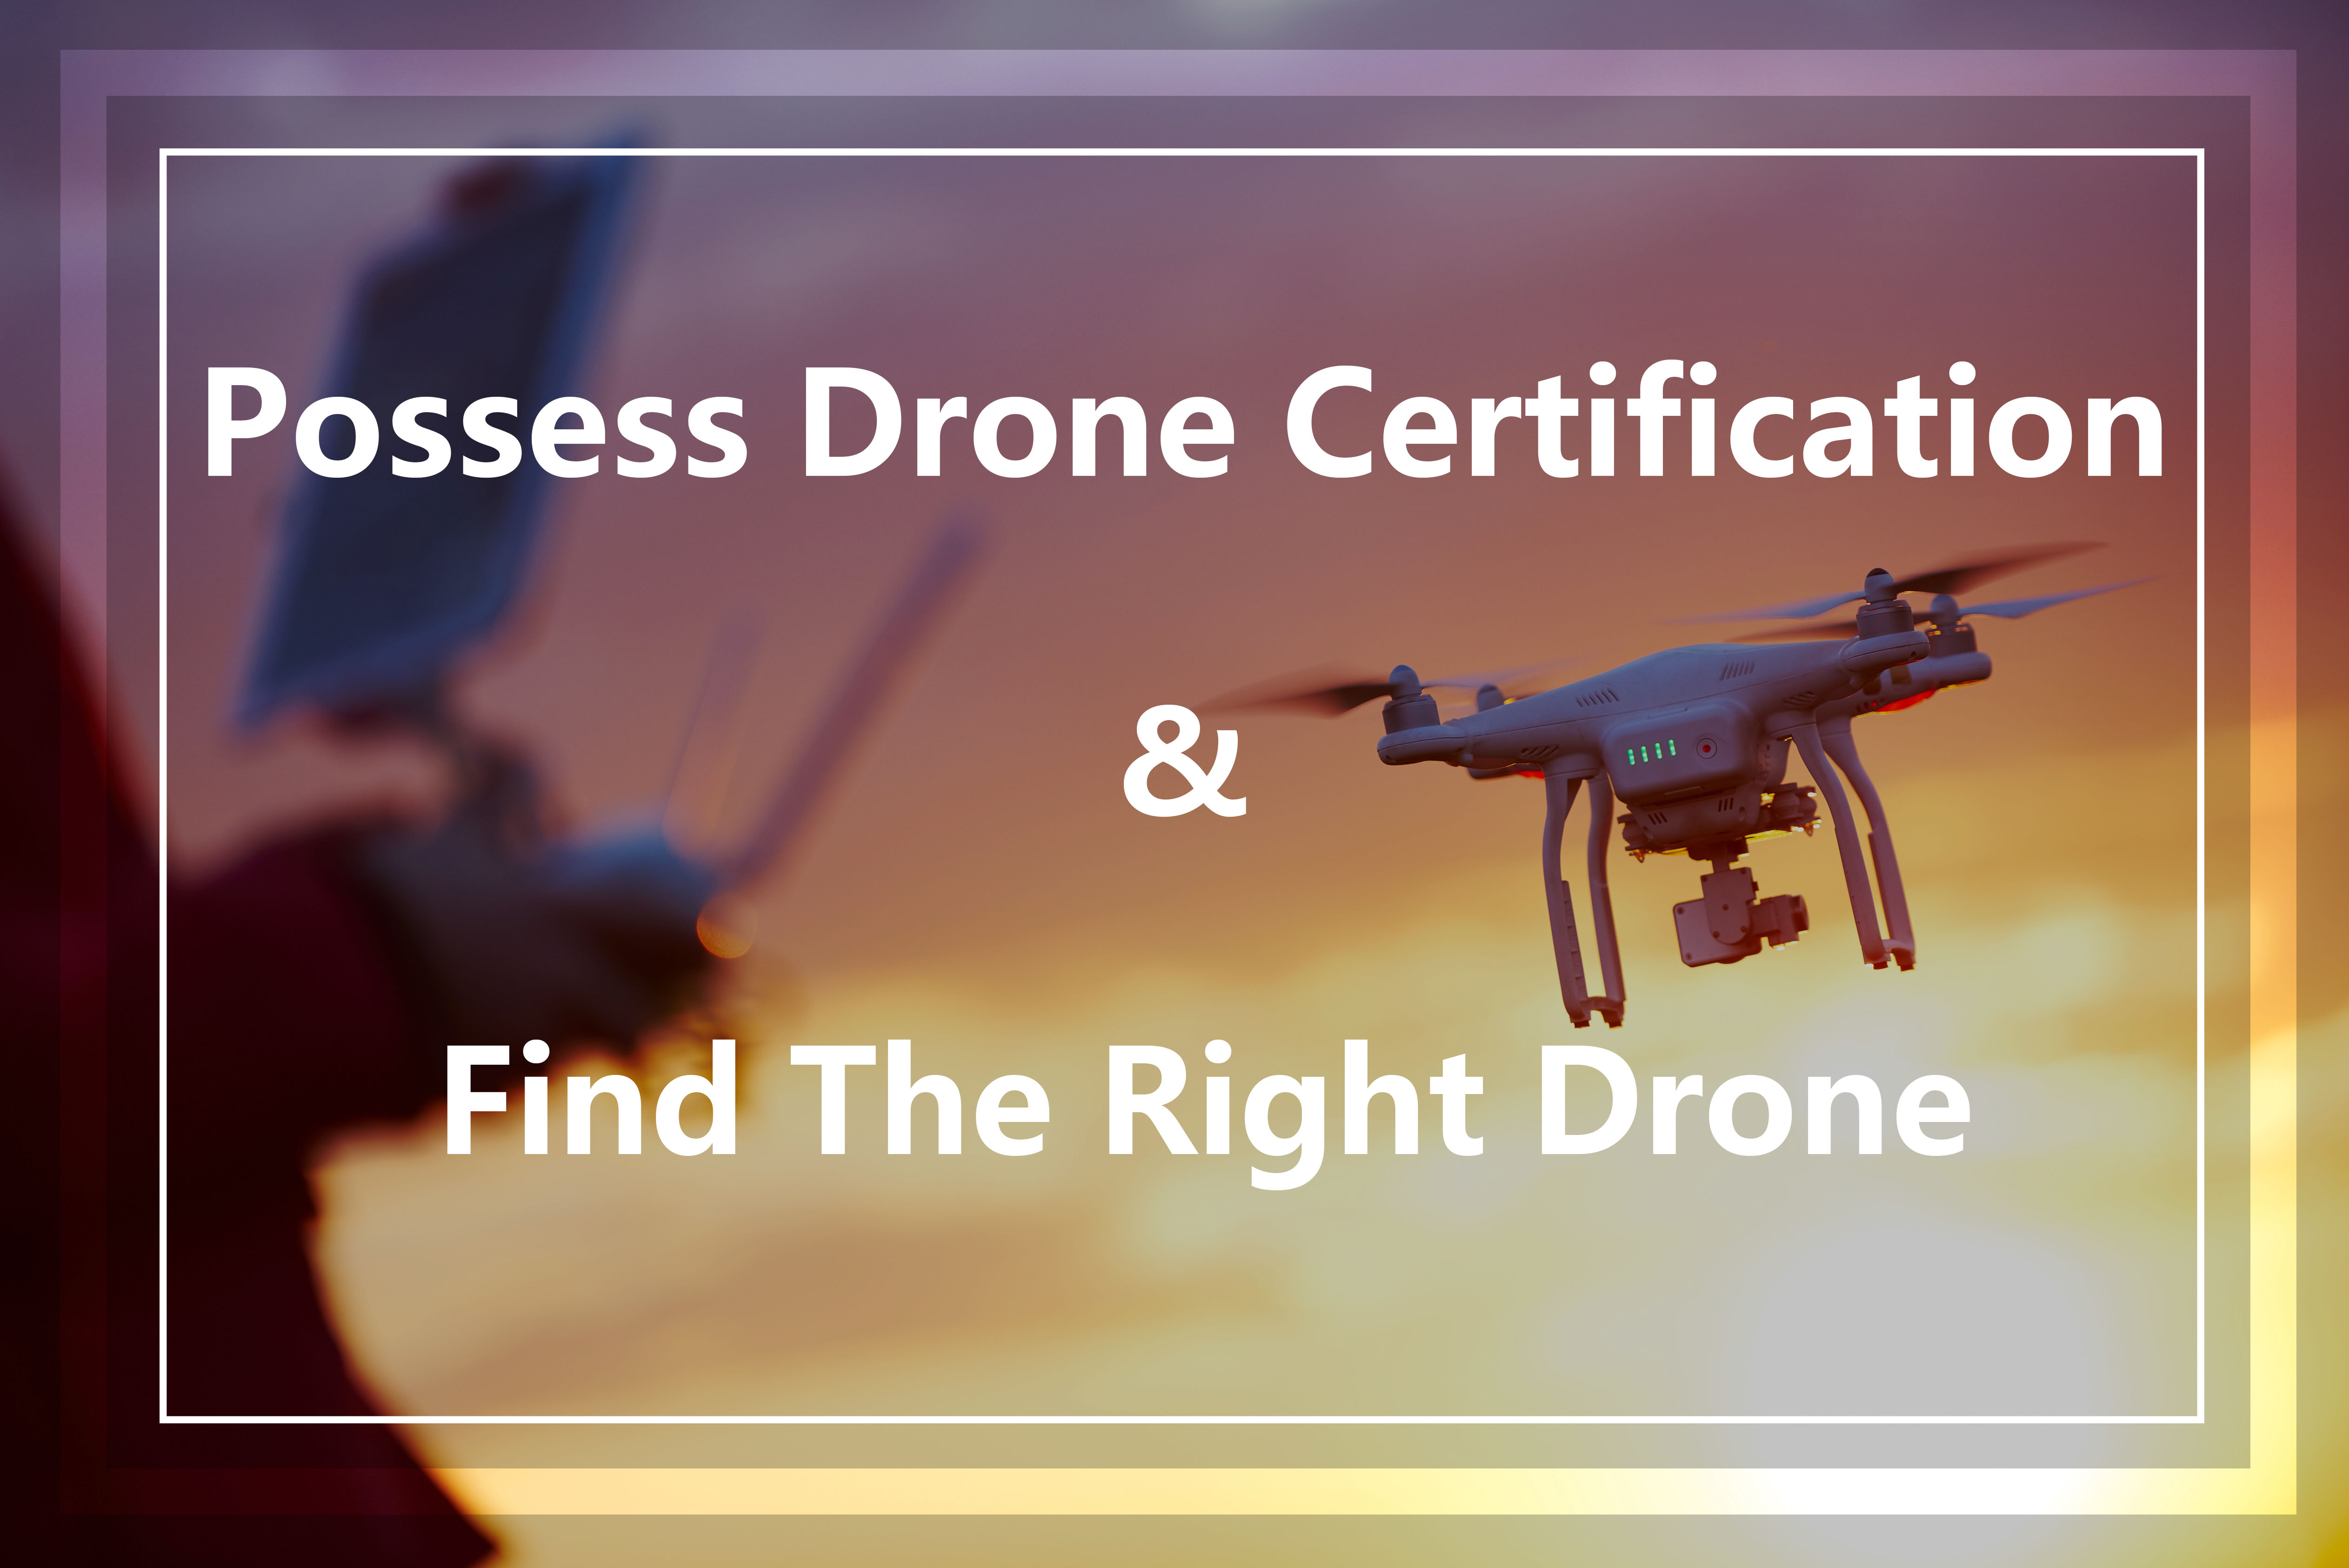 How to Possess a Drone Certification and Find the Right Drone?